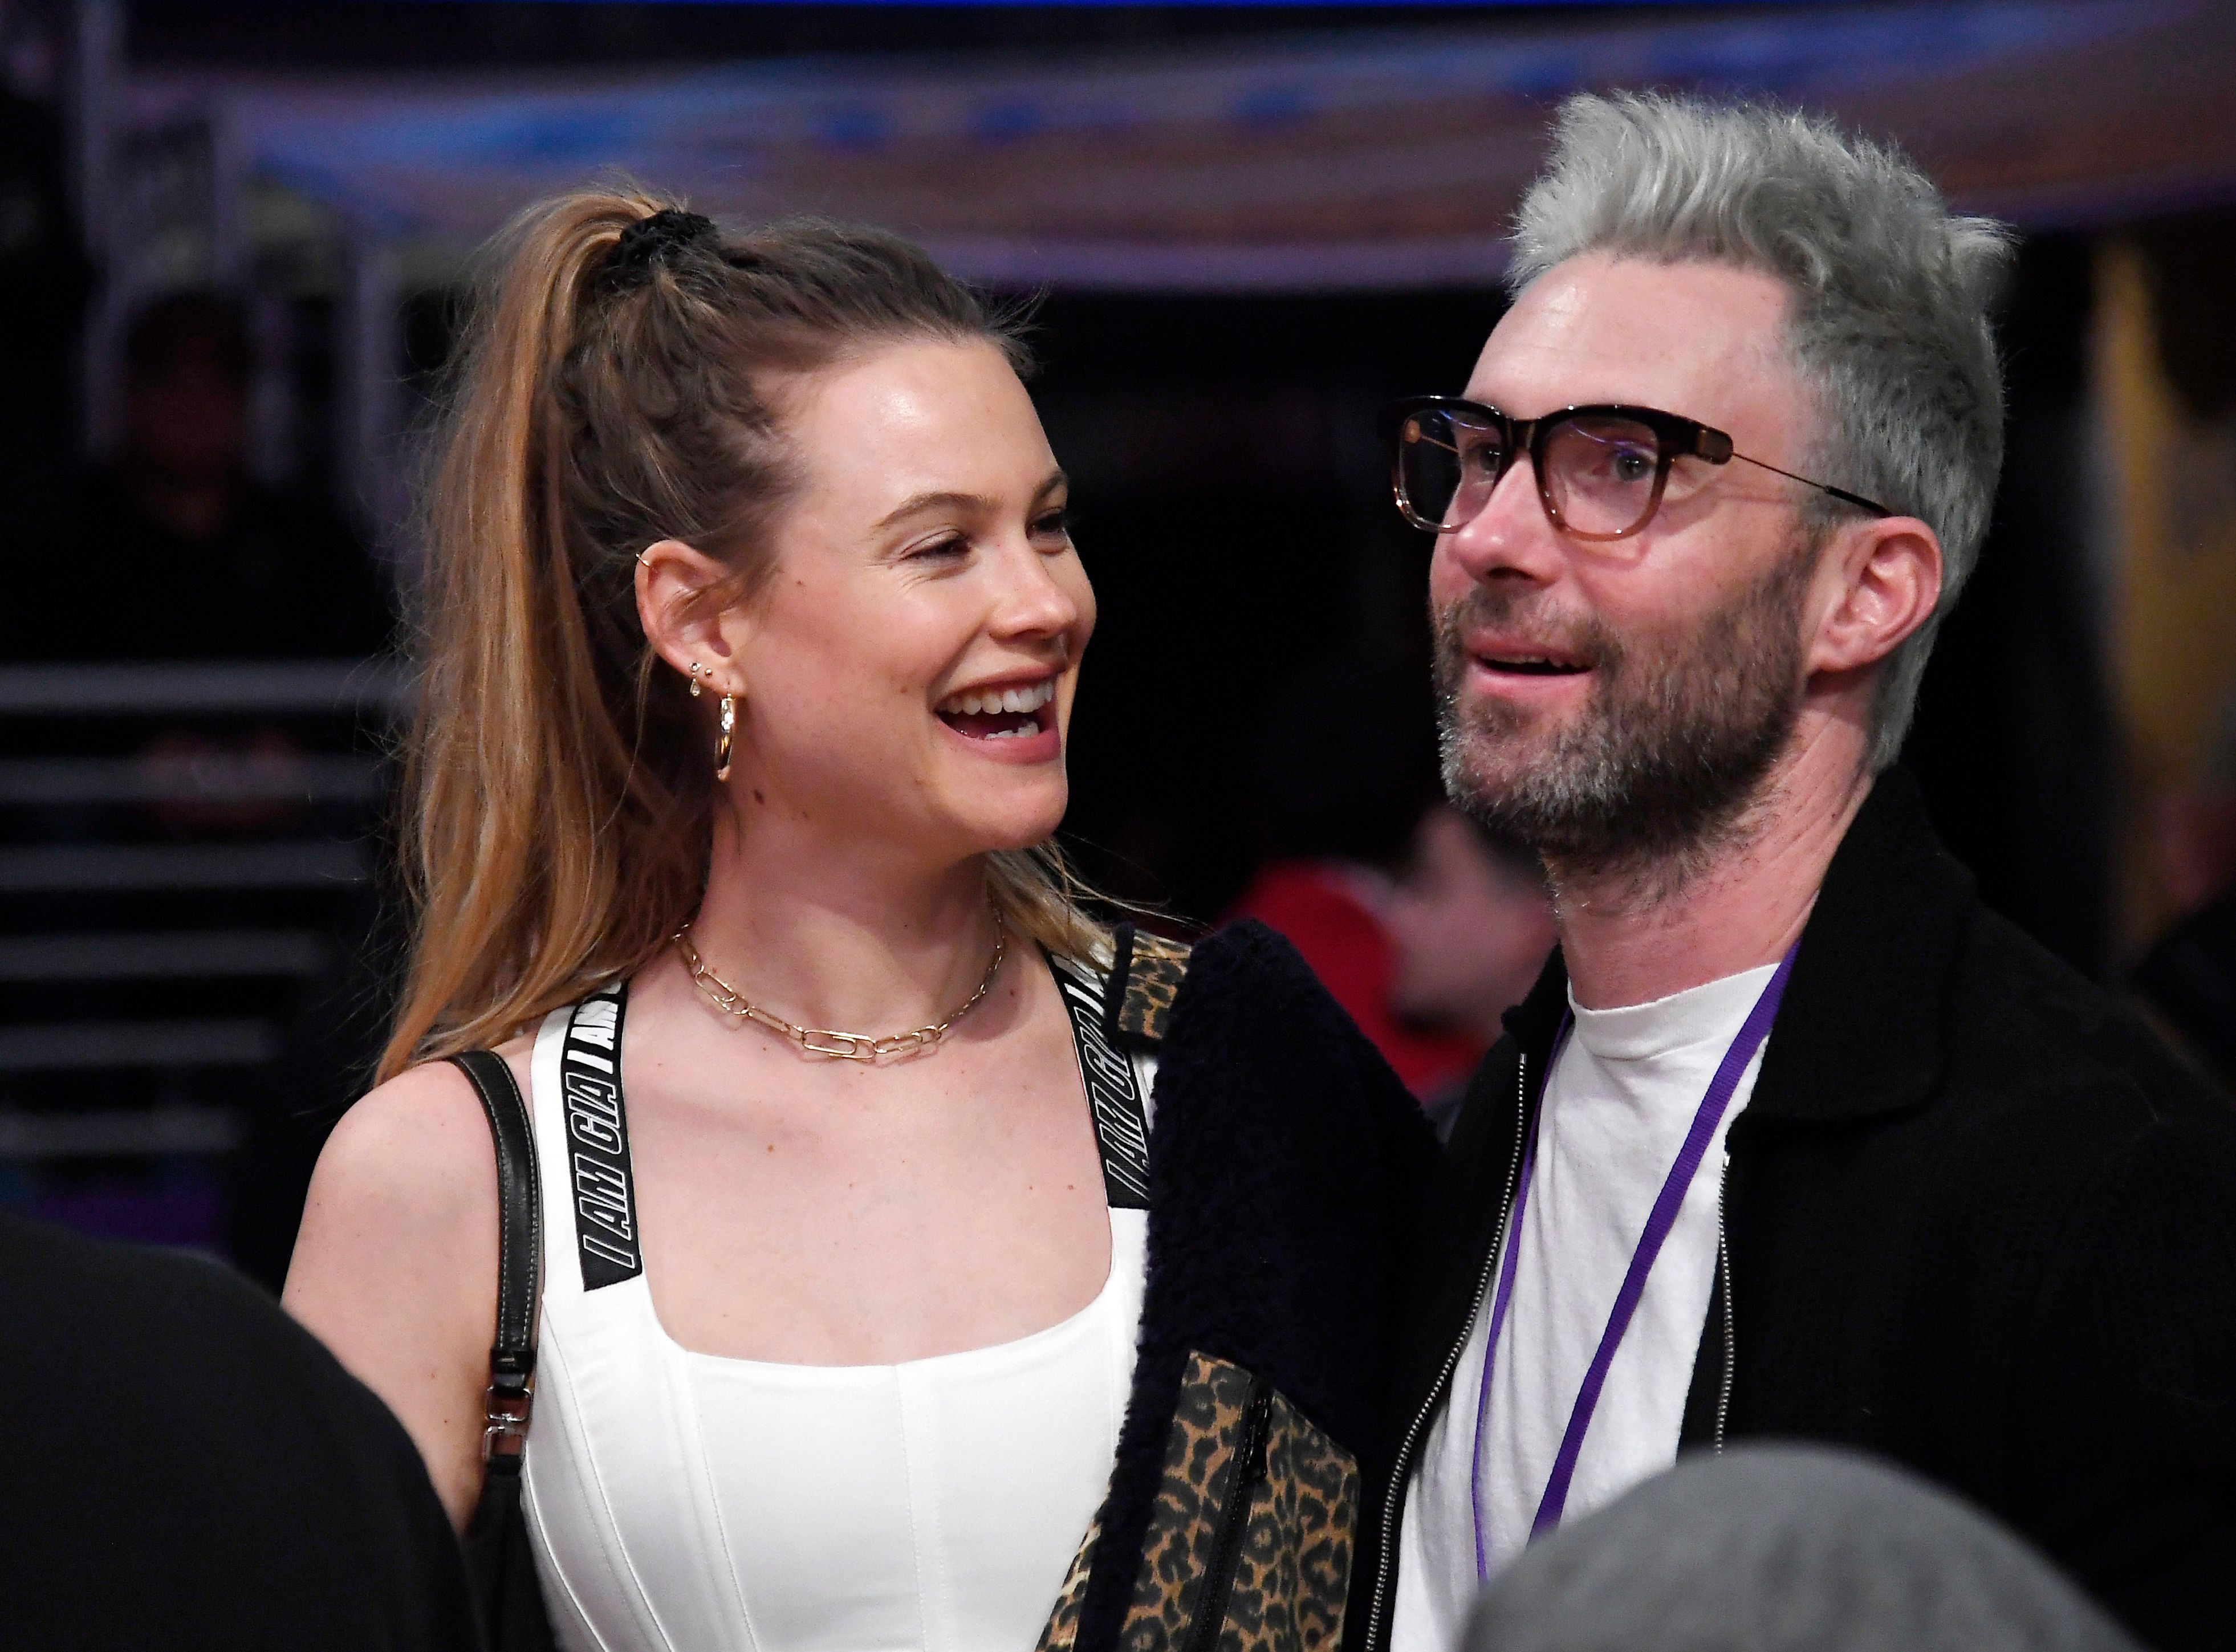 Singer Adam Lavine with model wife Behati Prinsloo